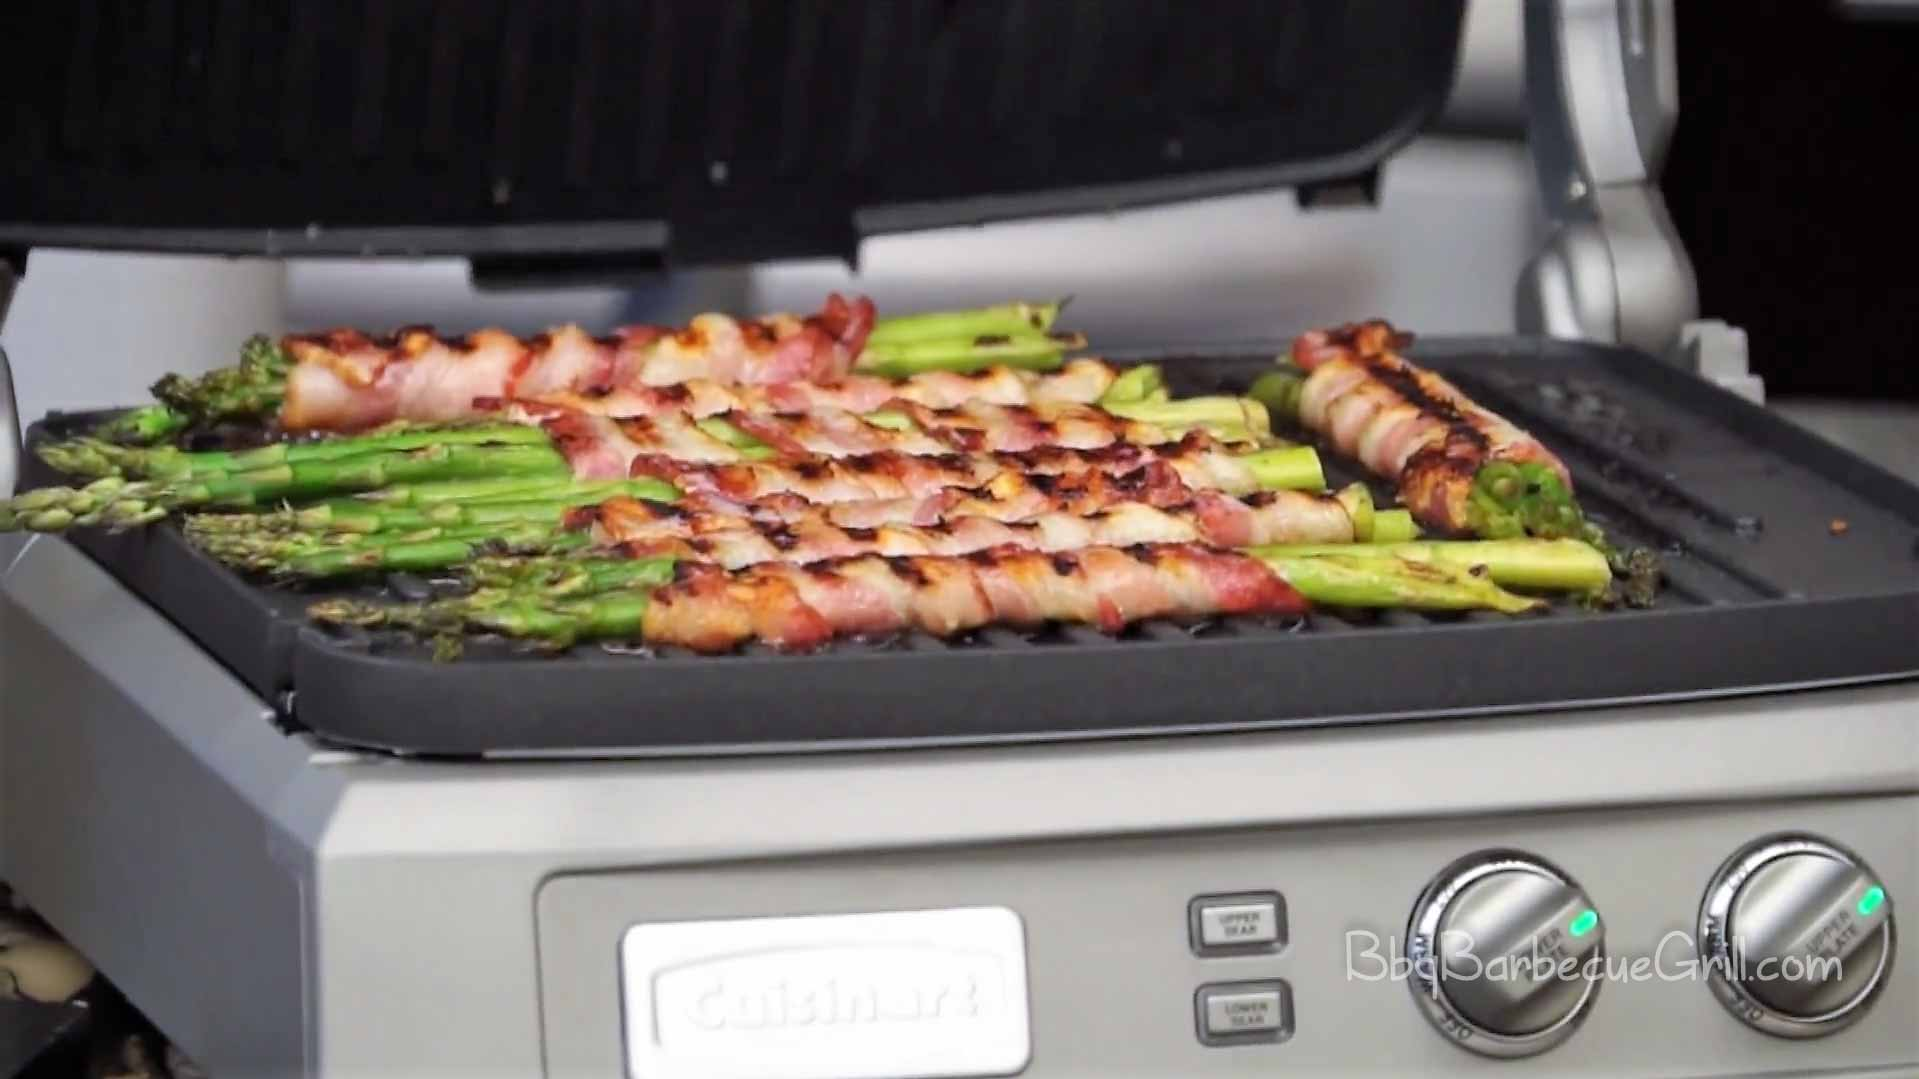 Best stainless steel electric grill